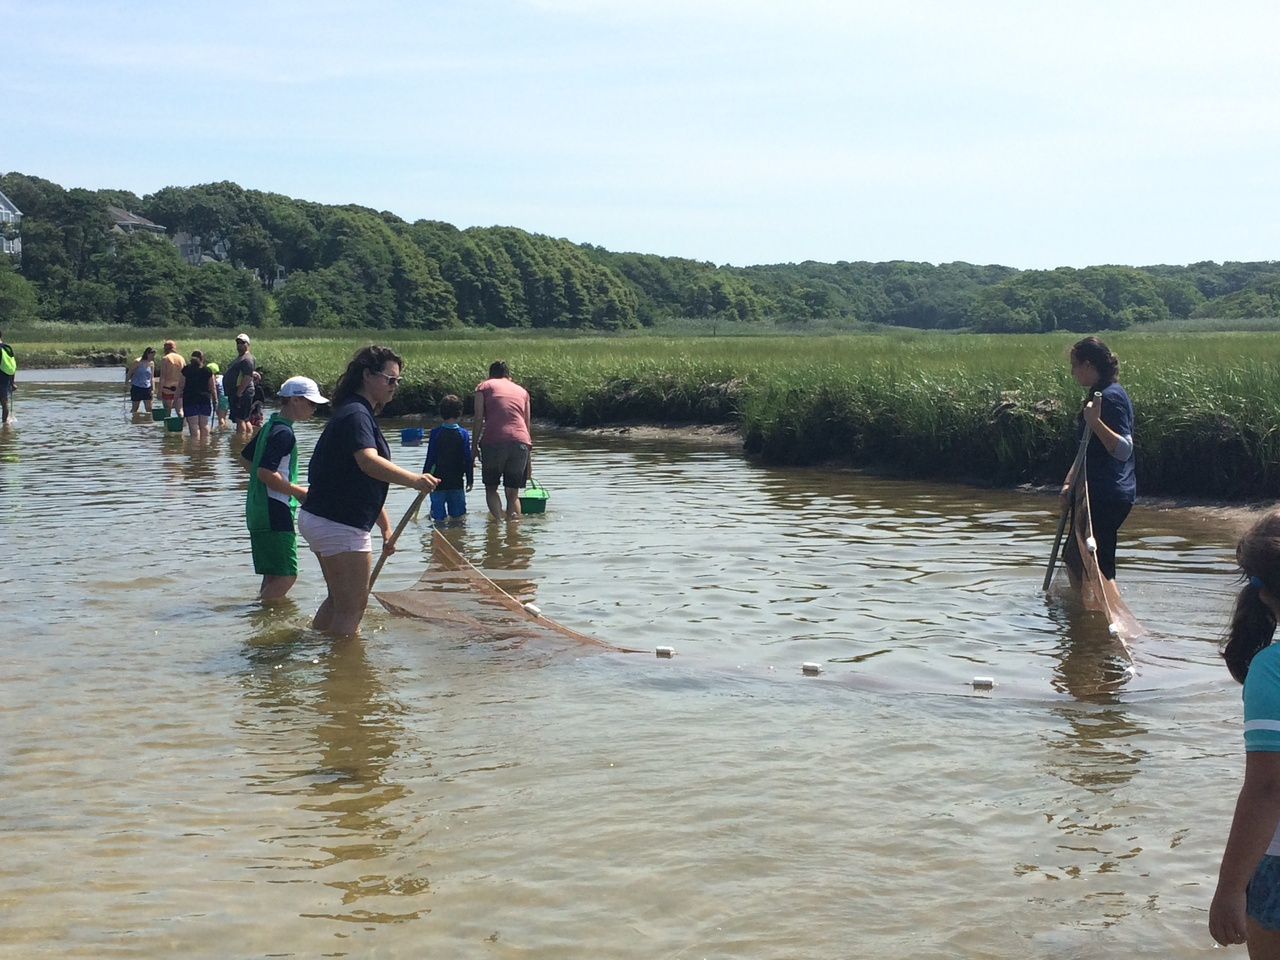 Group of people on a collecting walk in a marsh with nets and pails